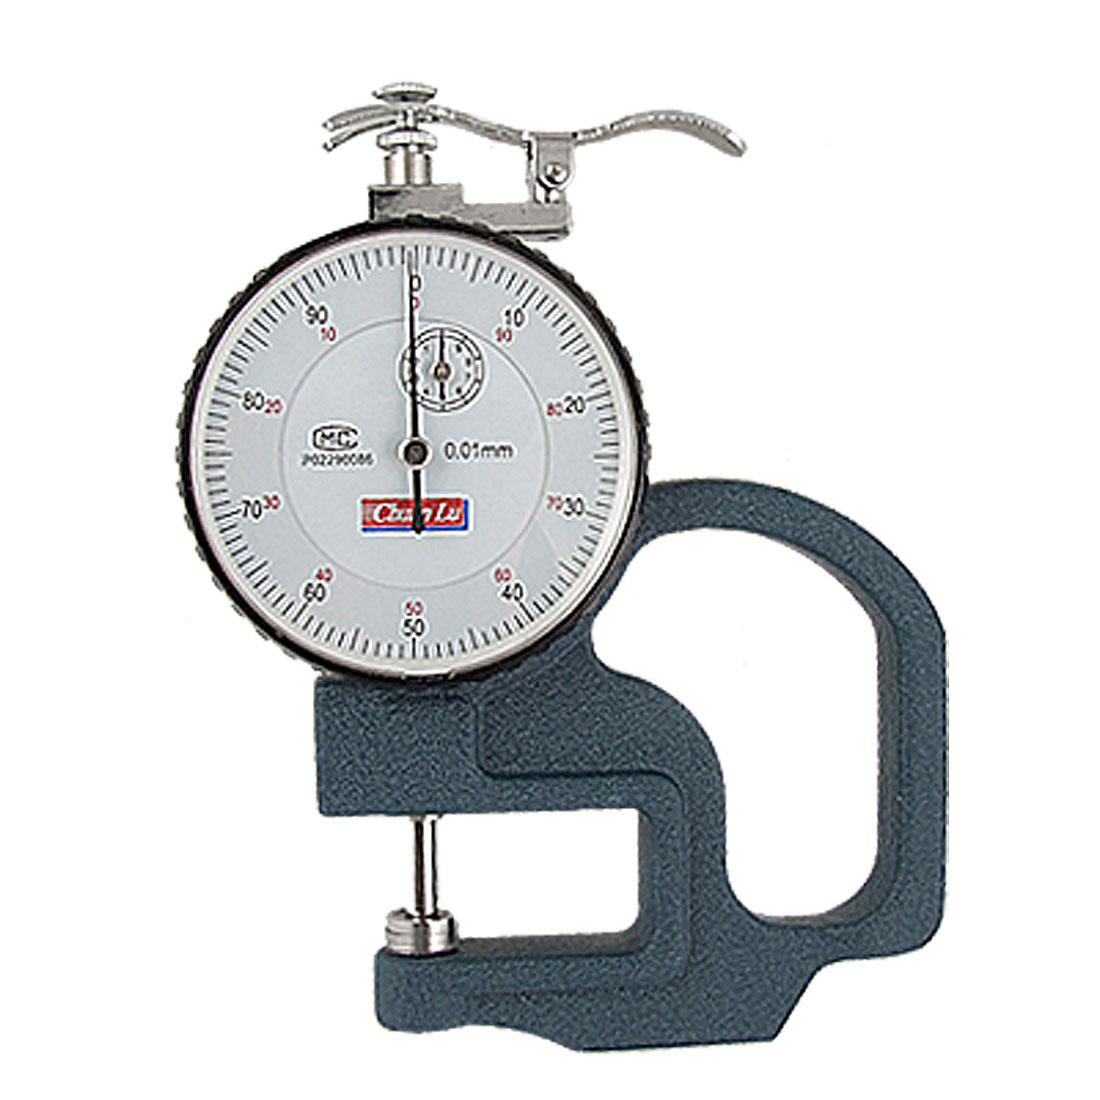 0-10mm Round Dial Teal Metal Handle Thickness Gauge Measuring Tool